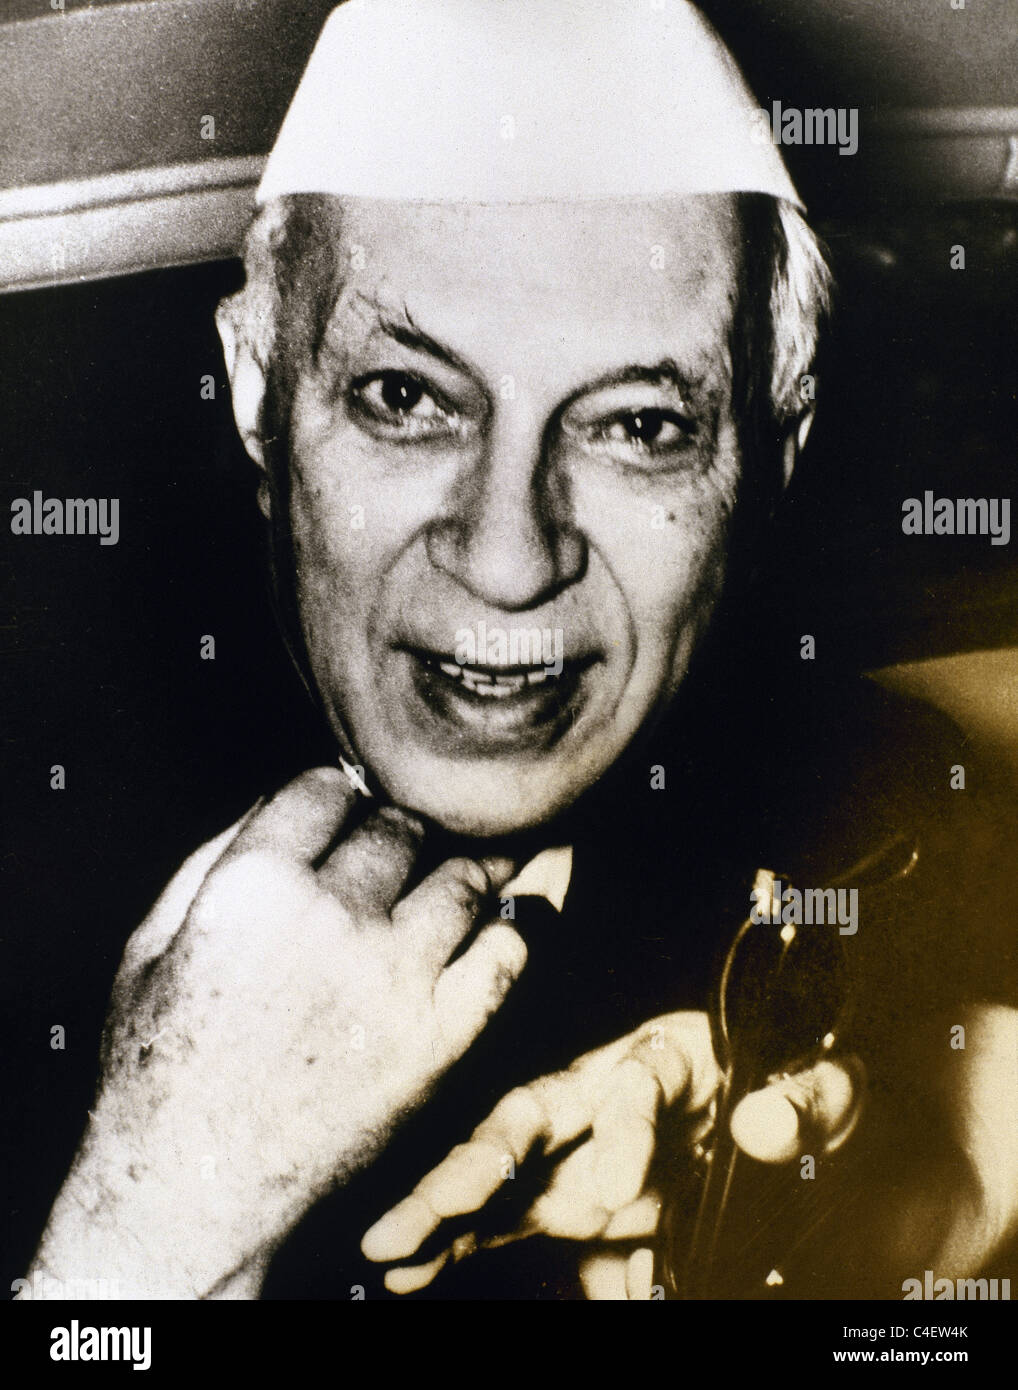 Jawaharlal Nehru (1889-1964). Indian statesman who was the first and longest-serving Prime Minister of India. - Stock Image